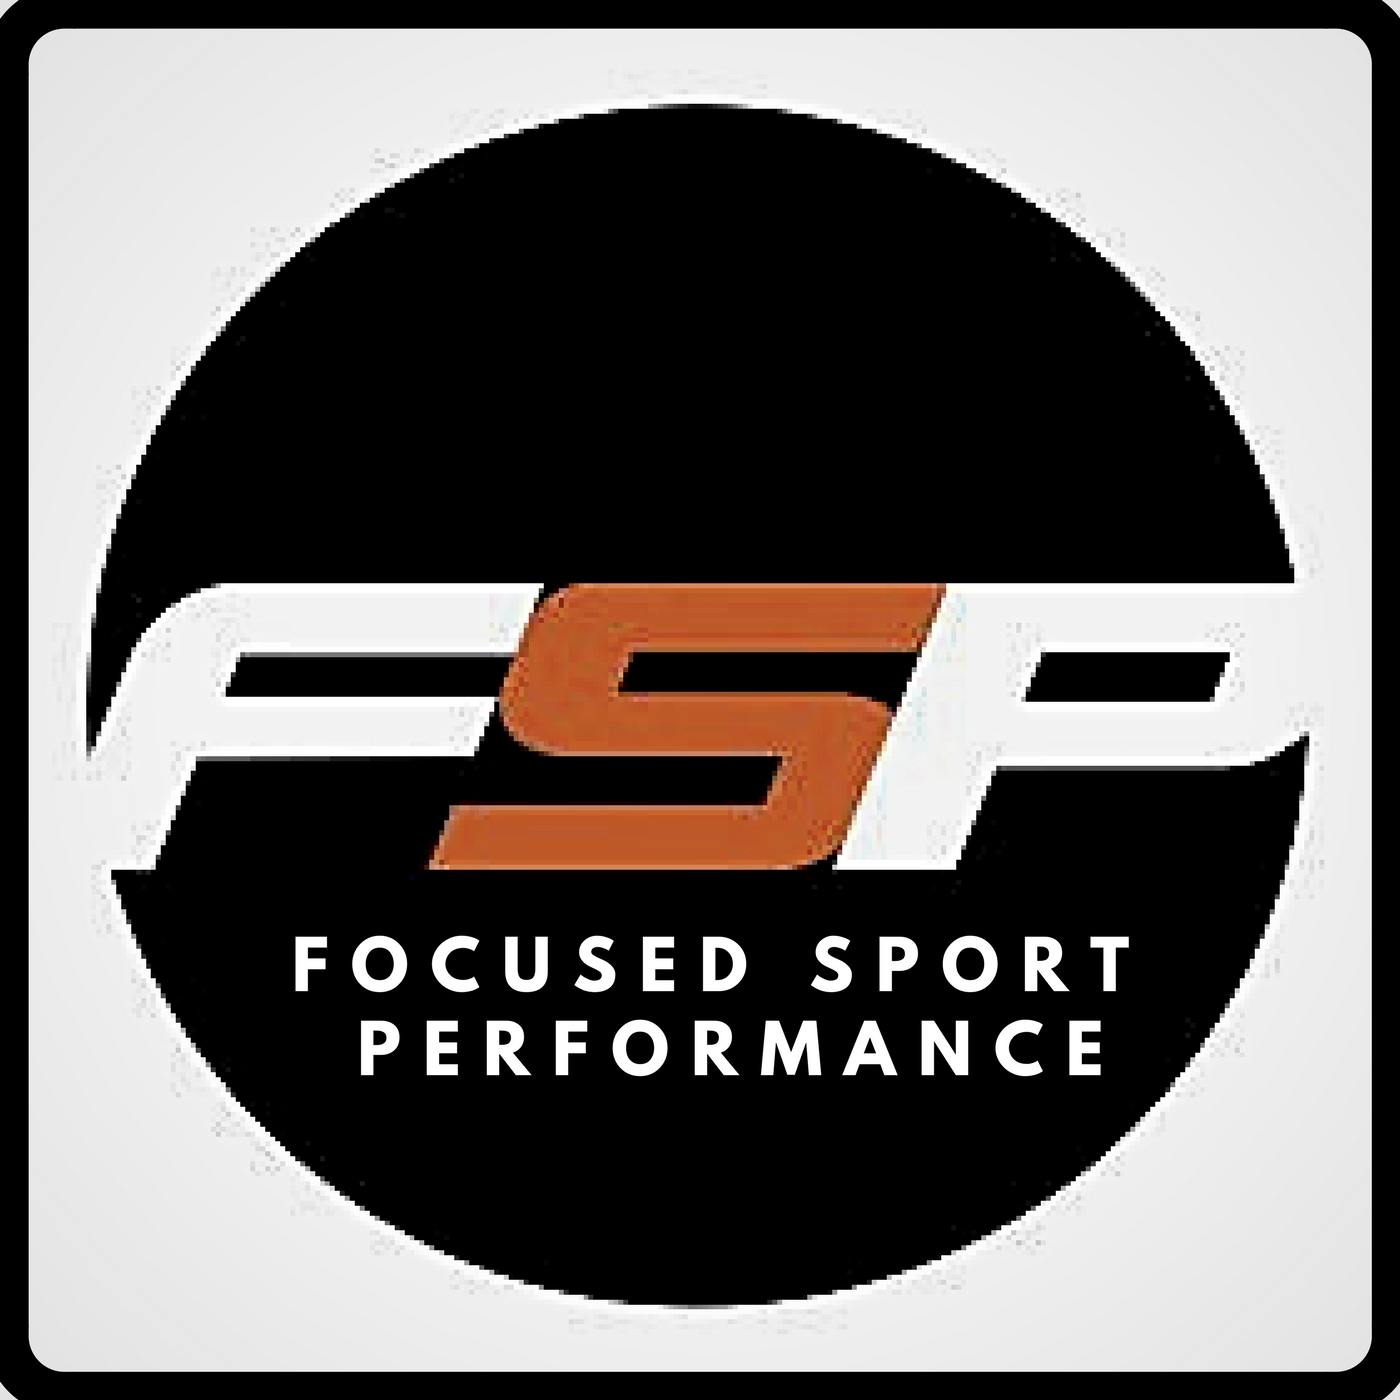 Focused Sport Performance